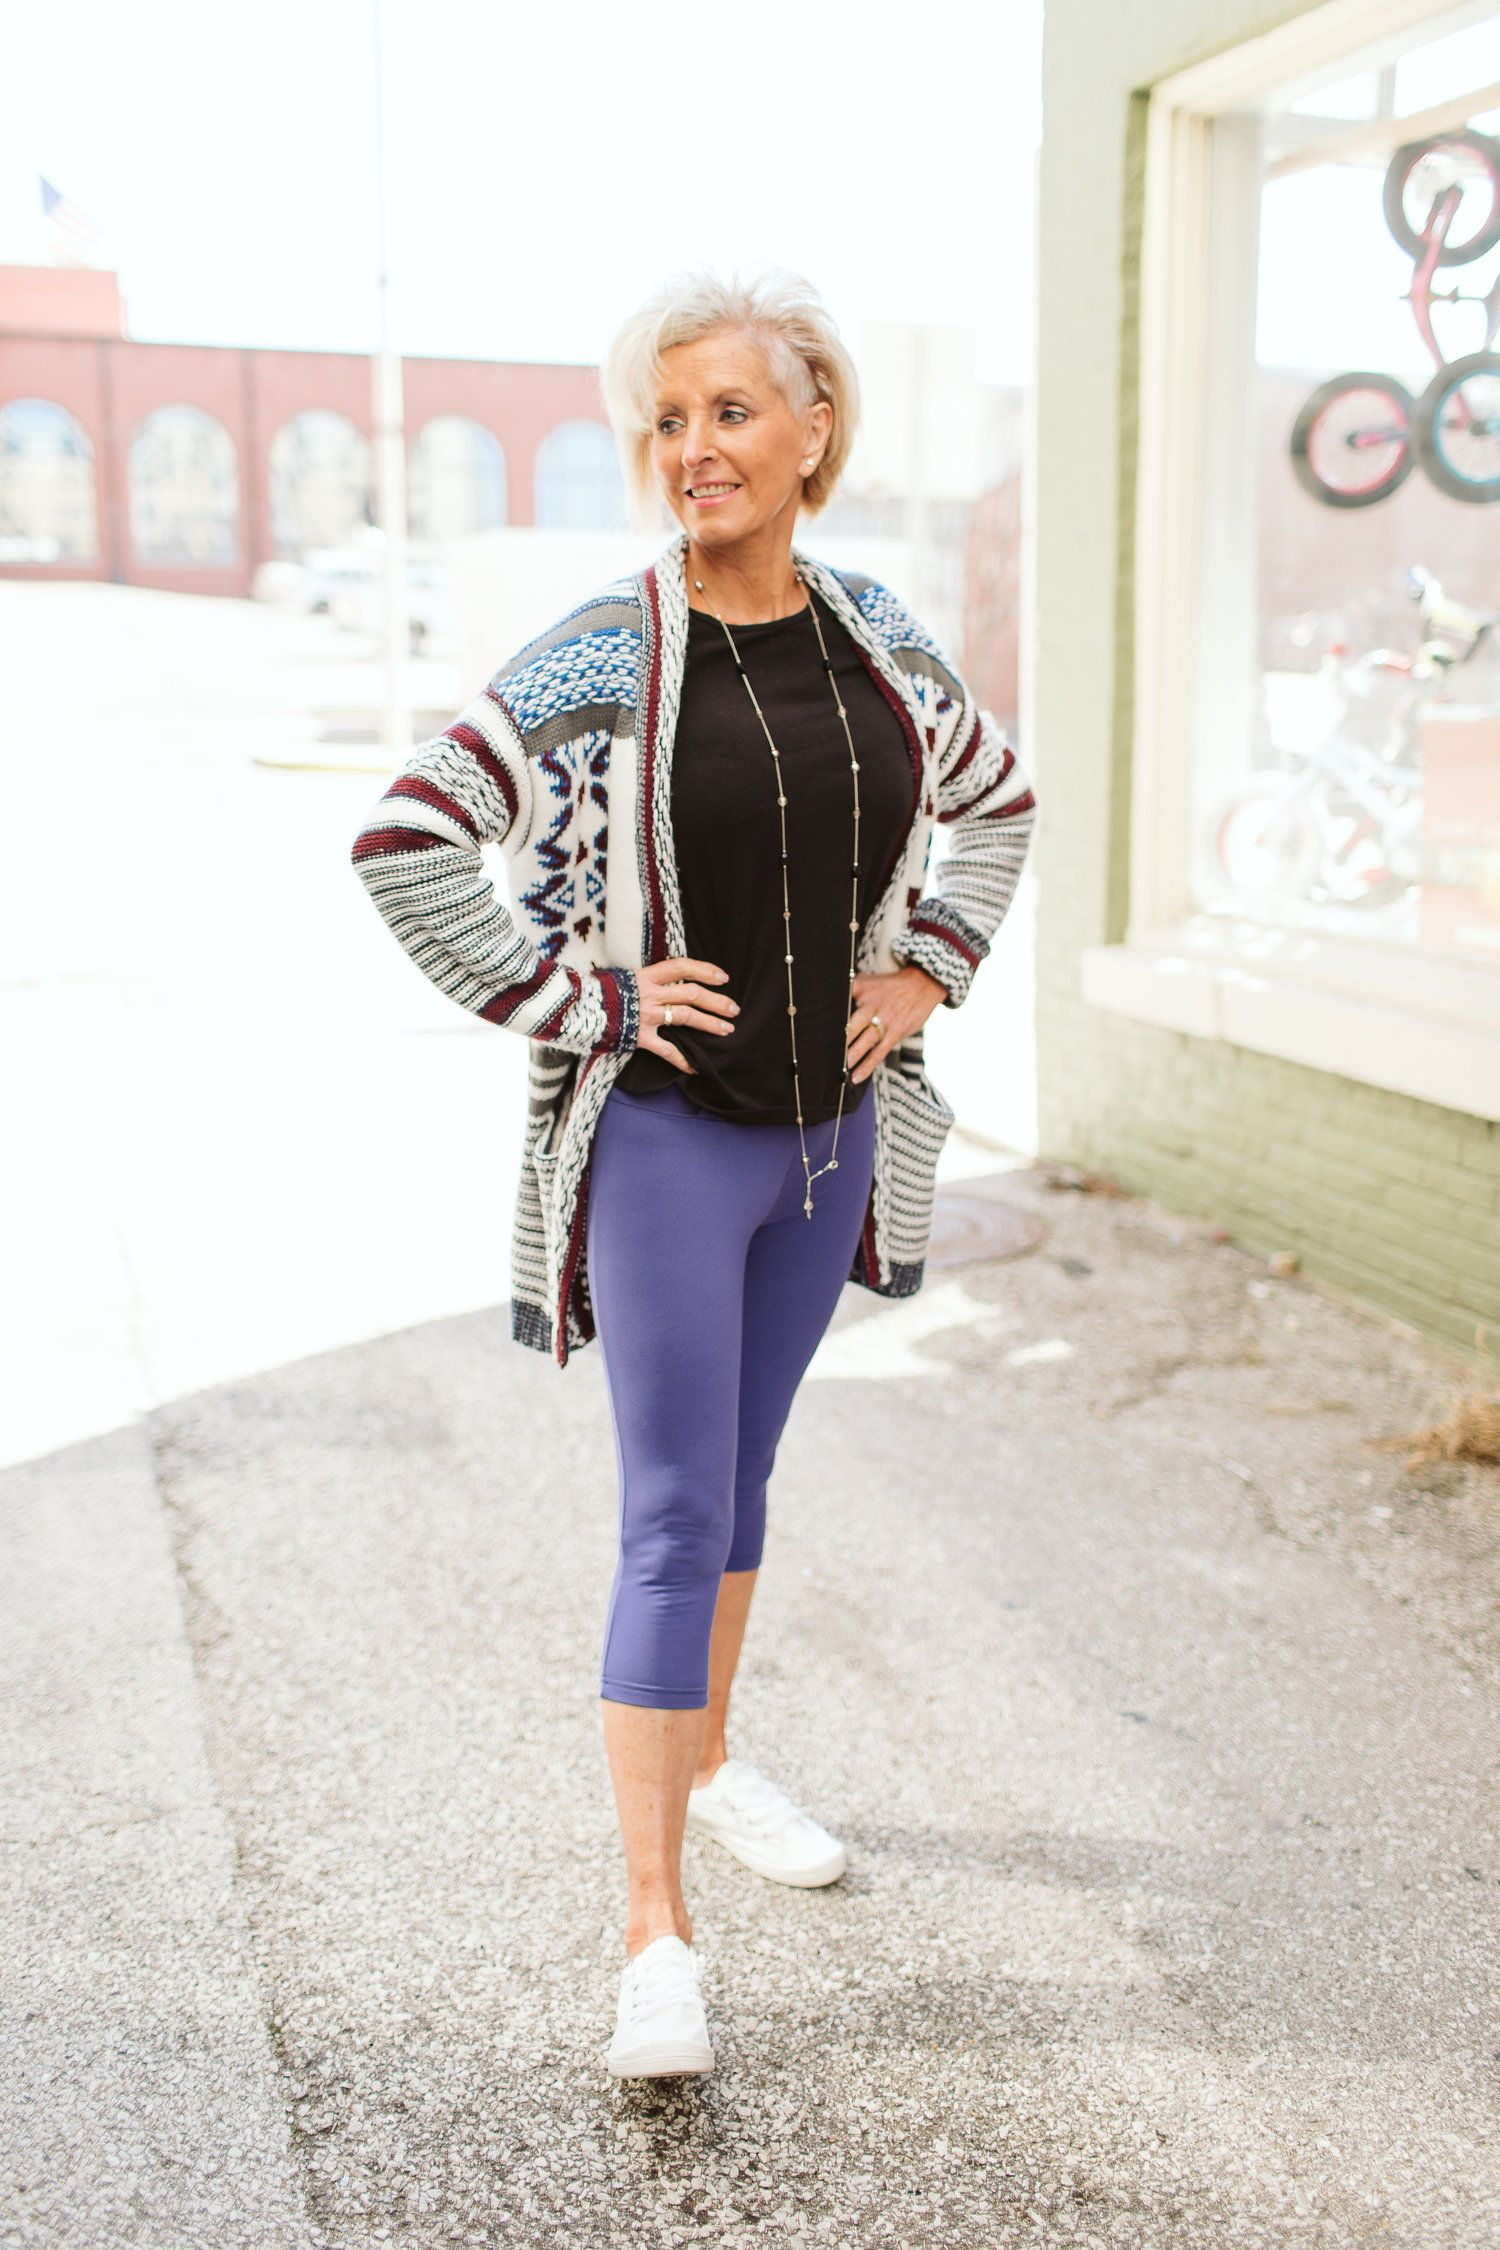 Pin On Gym Outfits And Leggings